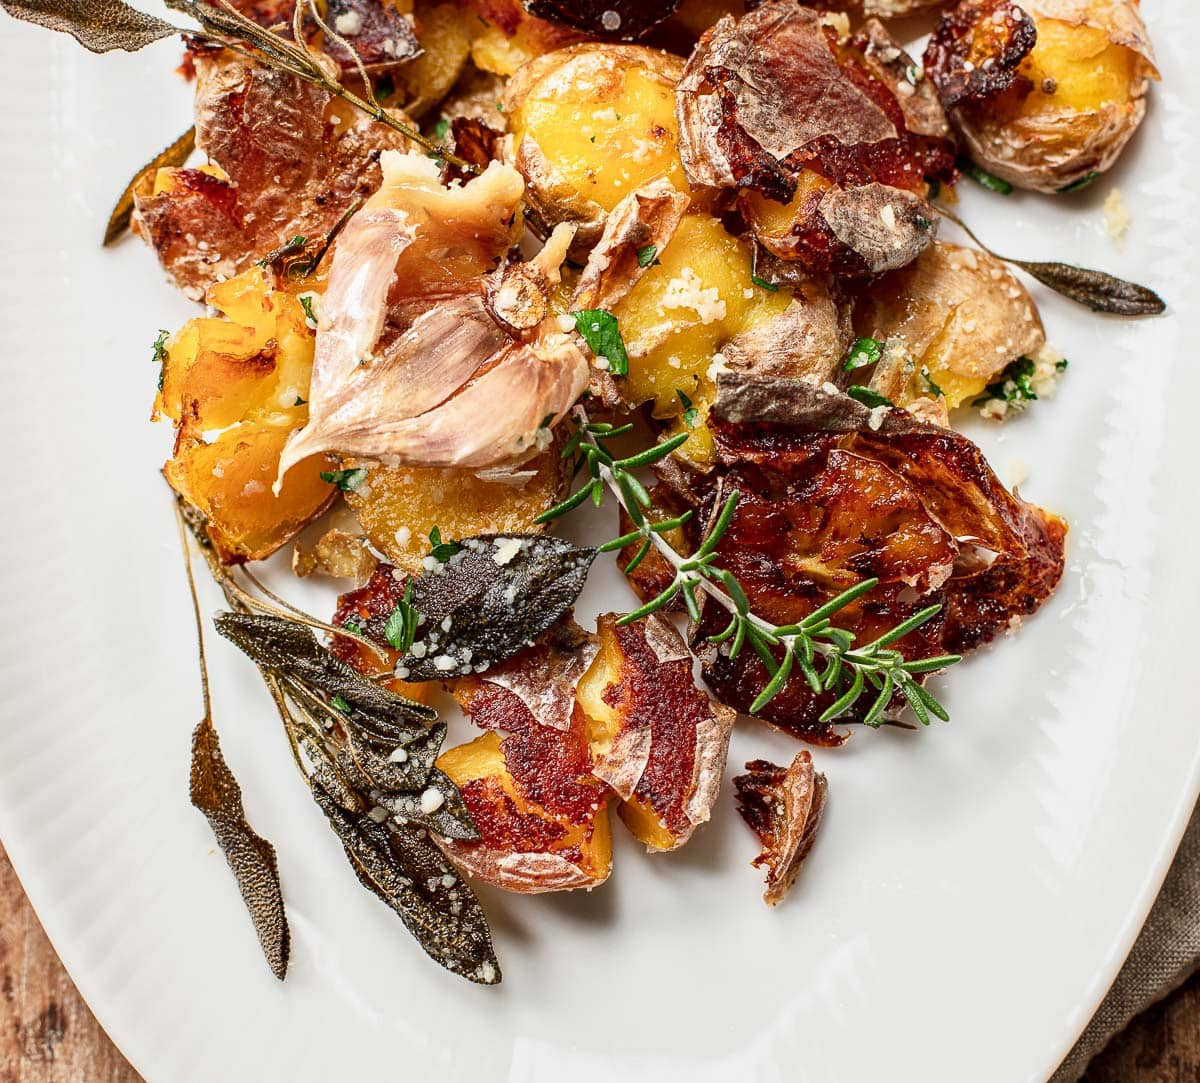 Image of an oval white platter with crispy roasted yellow potatoes with sage and rosemary sprigs on a wood background on top of a linen napkin